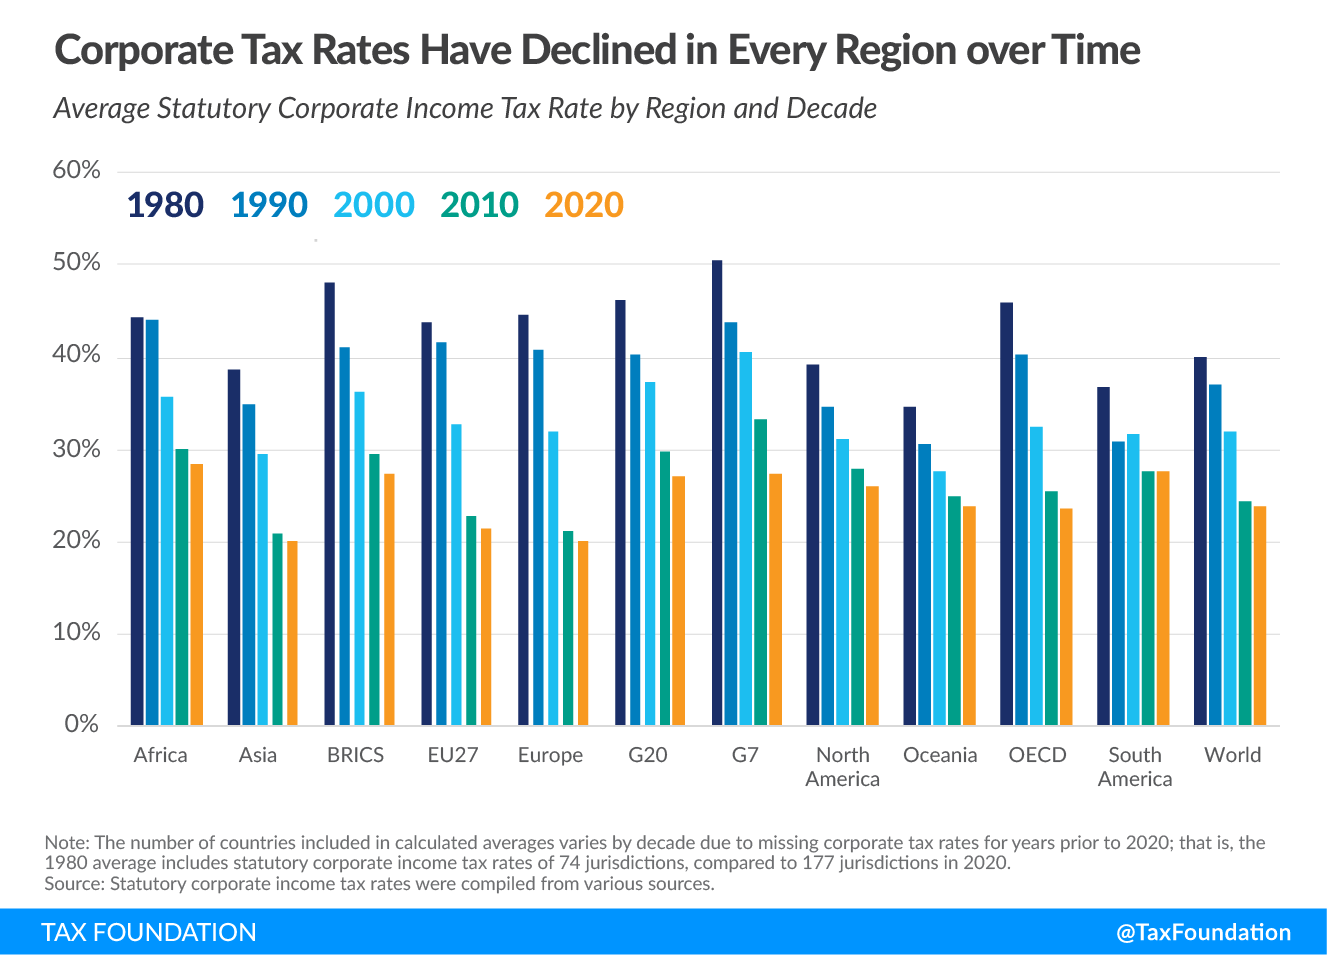 Corporate tax rates have declined in every region around the world over time. 2020 corporate tax rates around the world, 2020 corporate tax trends